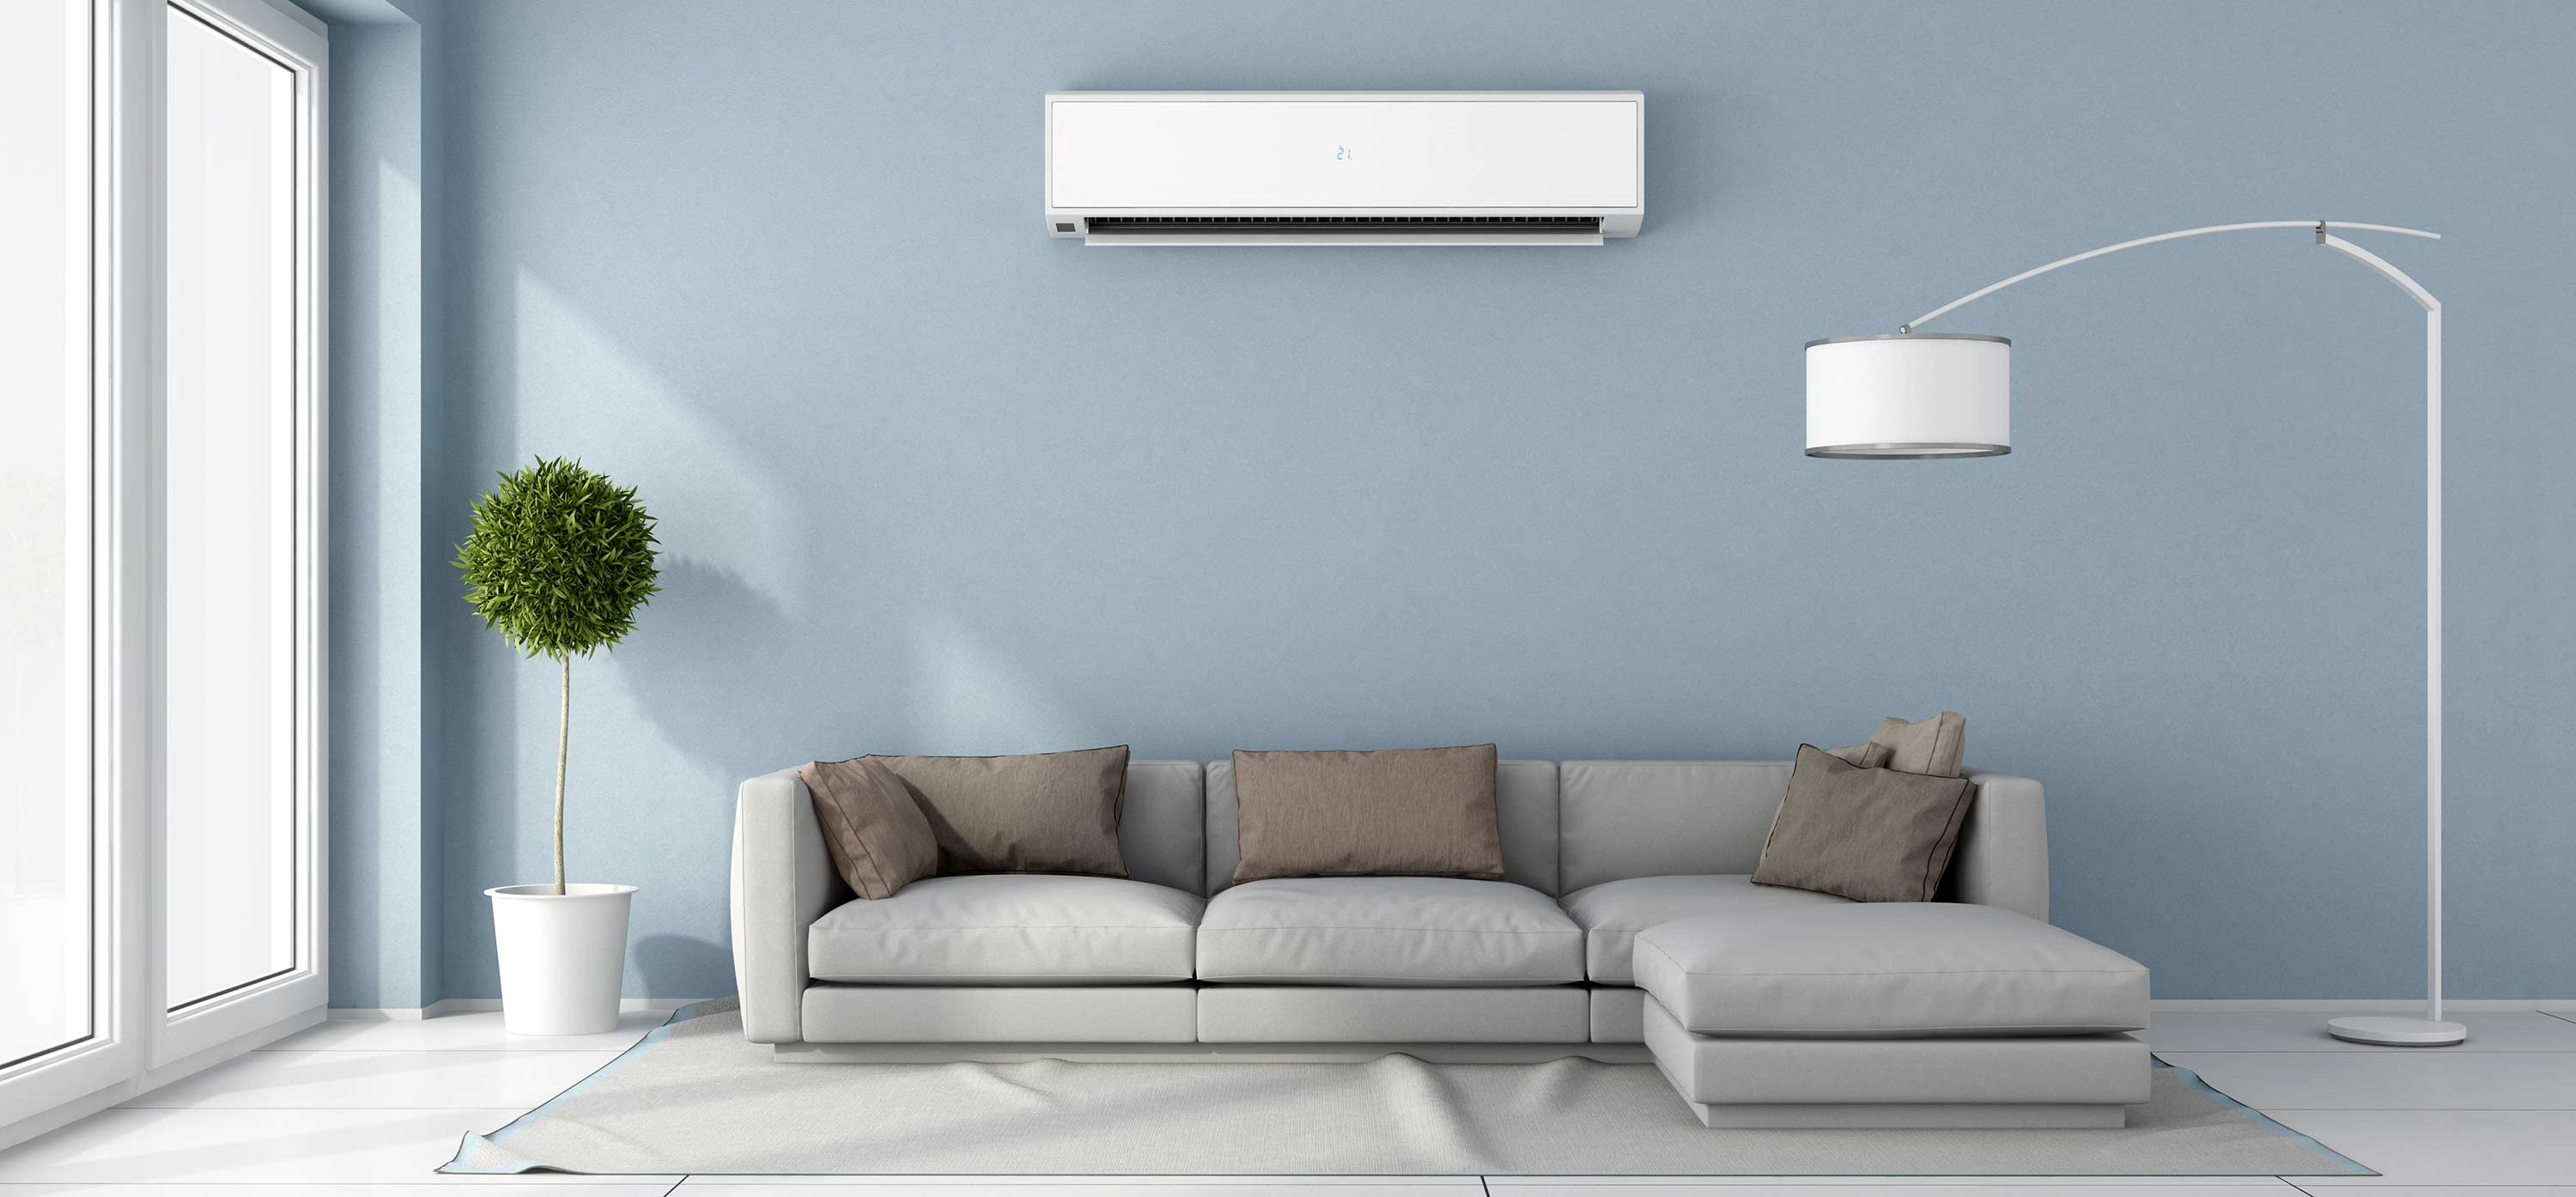 More Tips for Cooling Your Home and Saving Money This Summer